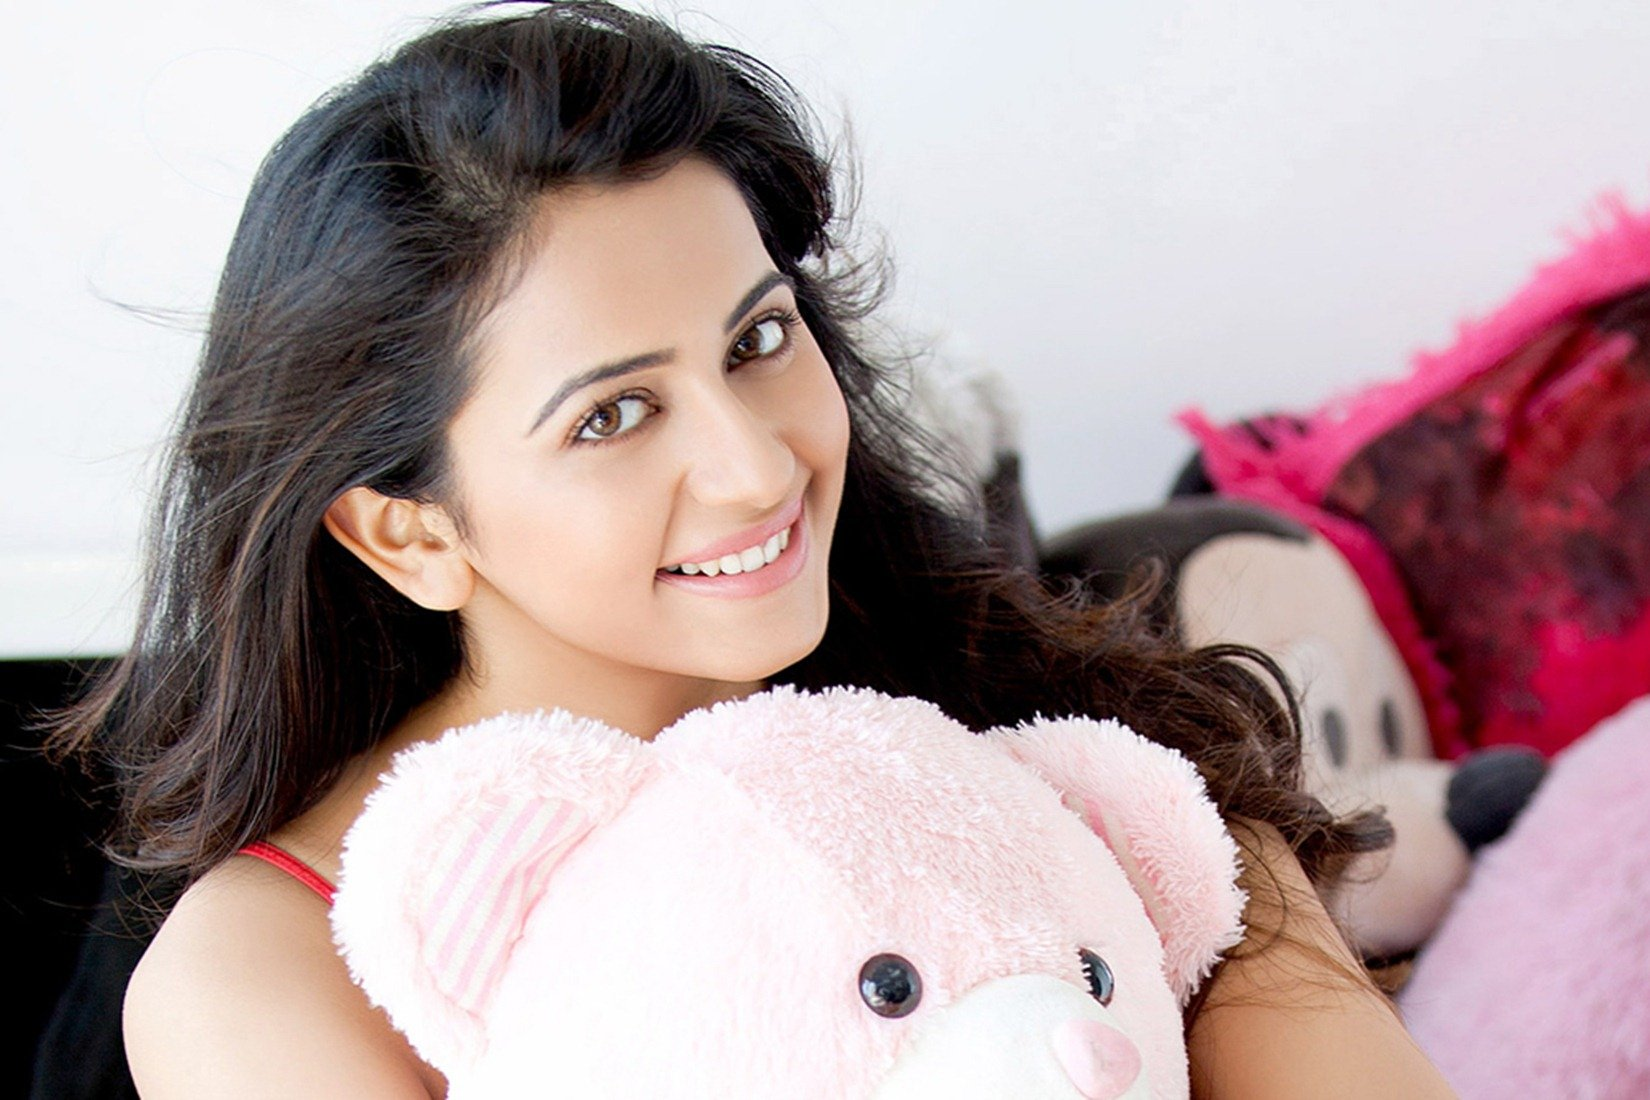 Rakul Preet Singh Wallpapers HD Backgrounds Images Pics Photos 1650x1100